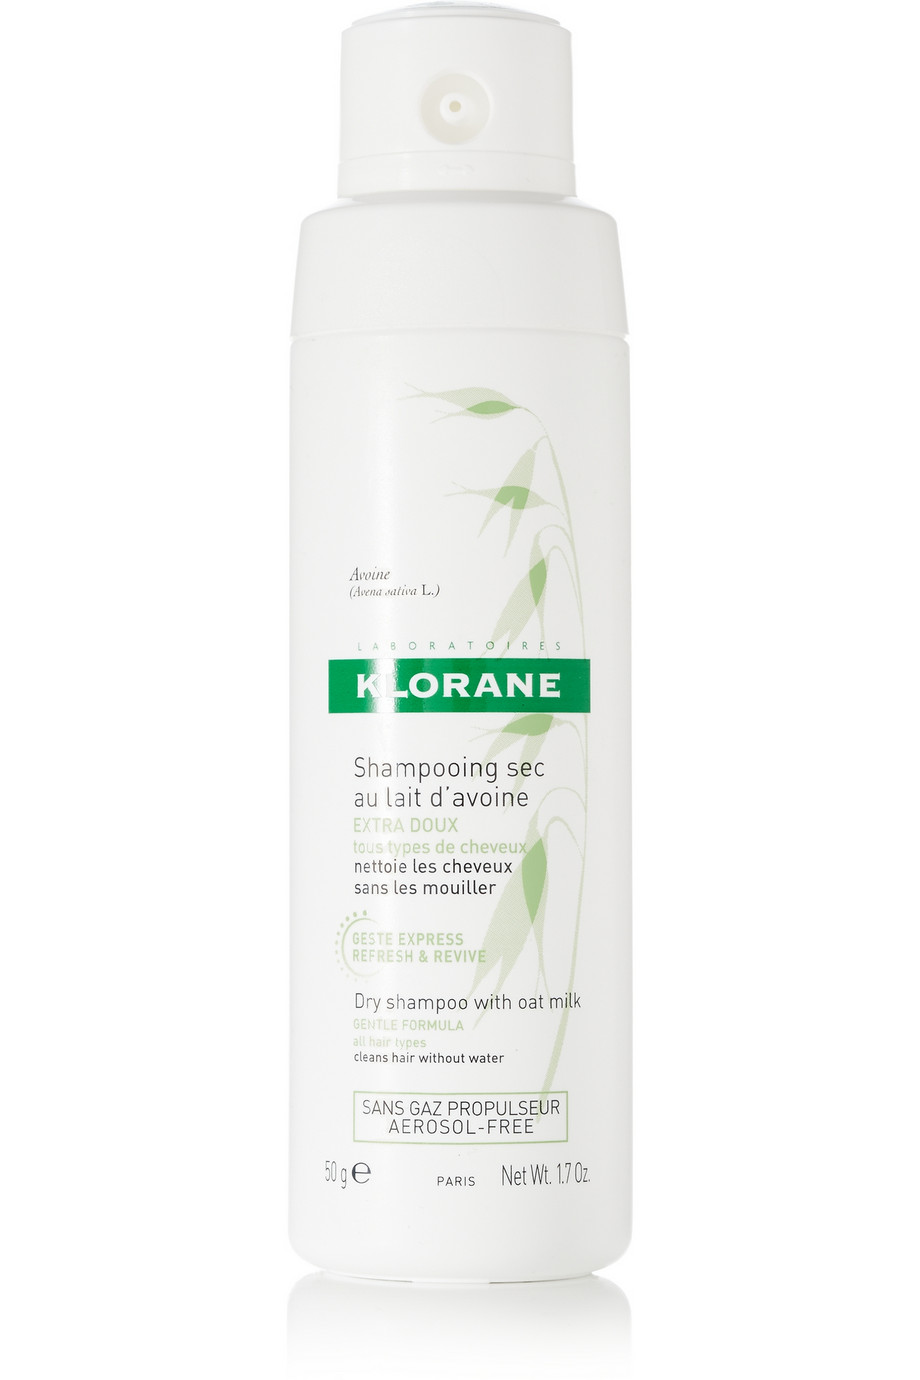 Our vote for the very best dry shampoo: Klorane dry shampoo with oat milk